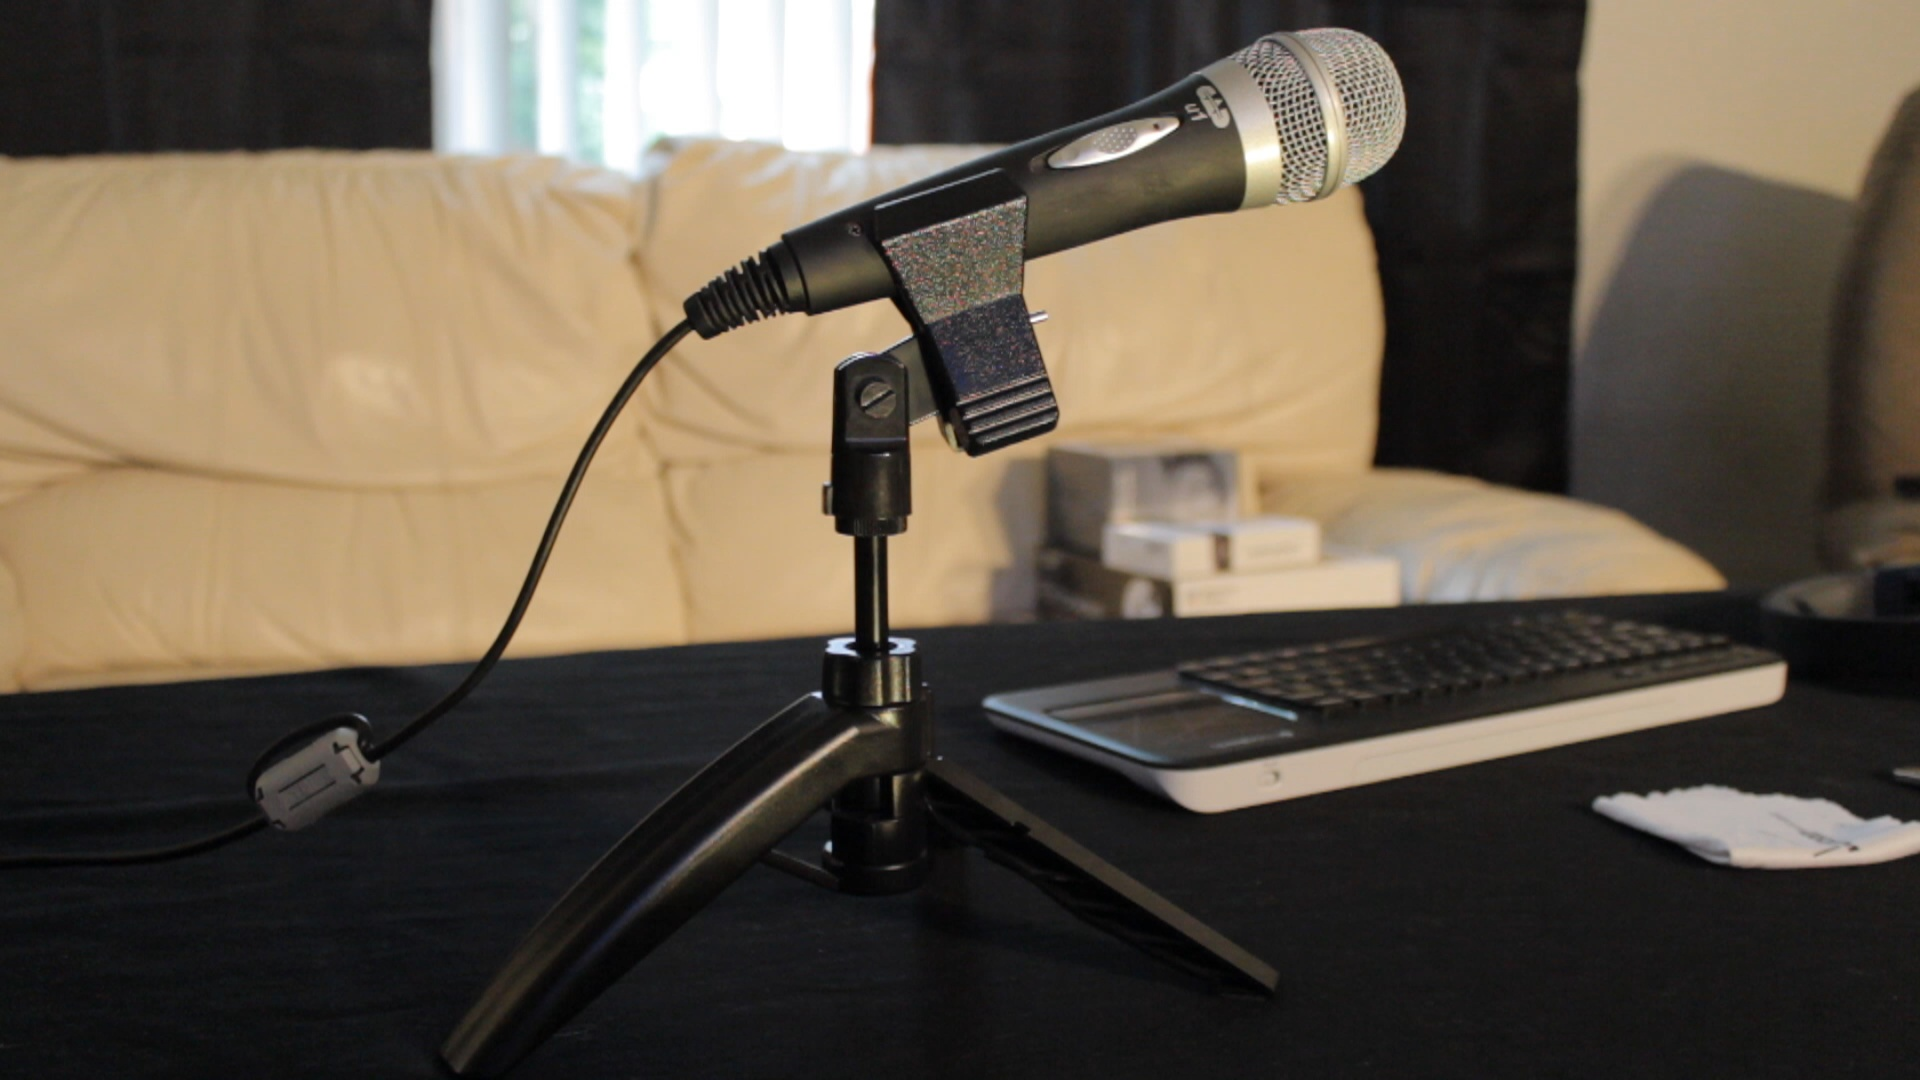 CAD Audio CAD U1 Review 25 Desk Microphone Thats It Guys